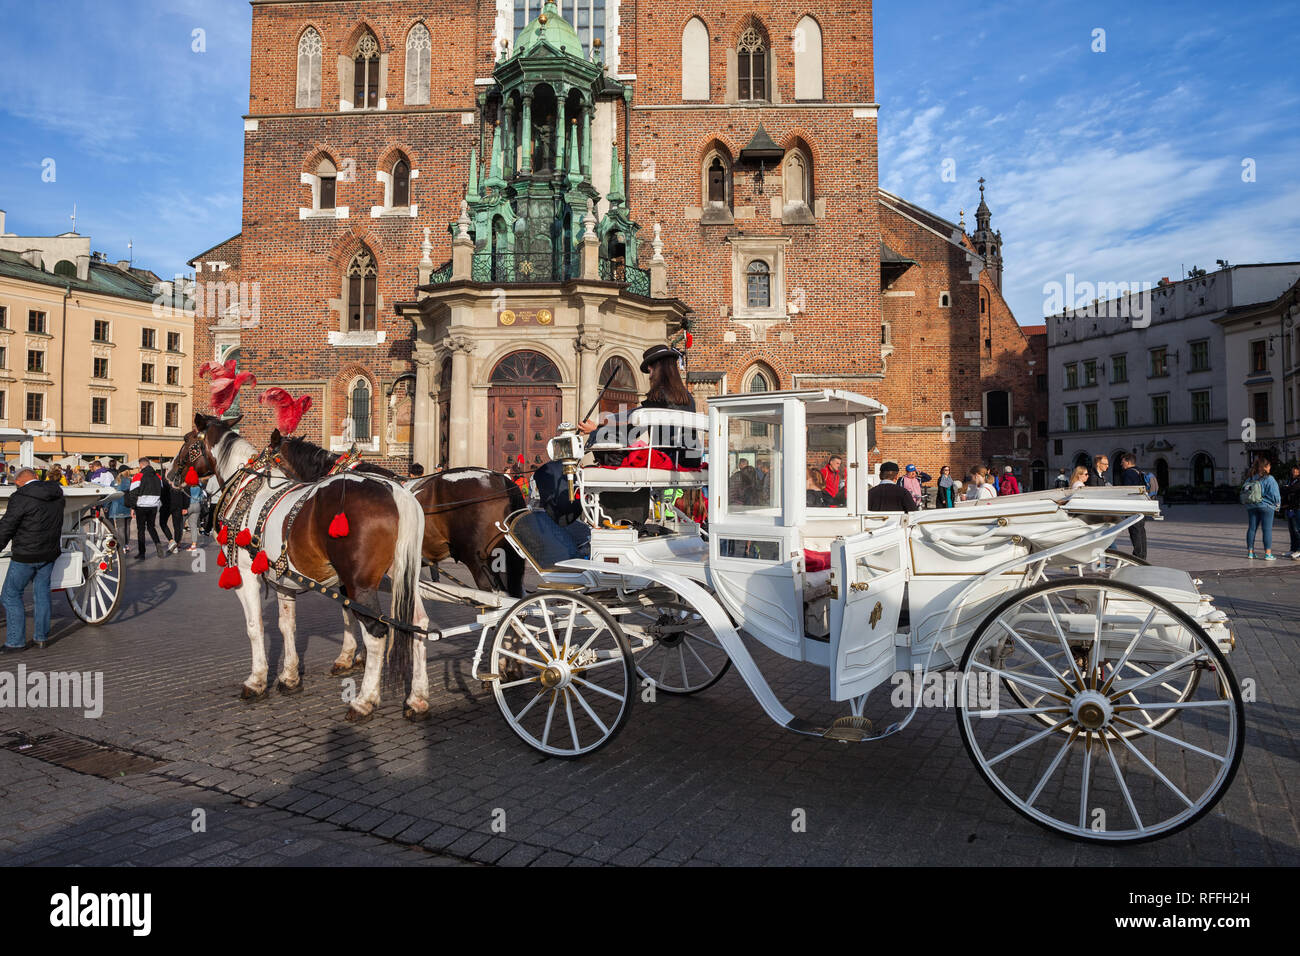 Poland, city of Krakow, horse carriage ride, sightseeing tour around the Old Town Main Market Square, Cloth Hall and St Adalbert Church in the backgro Stock Photo